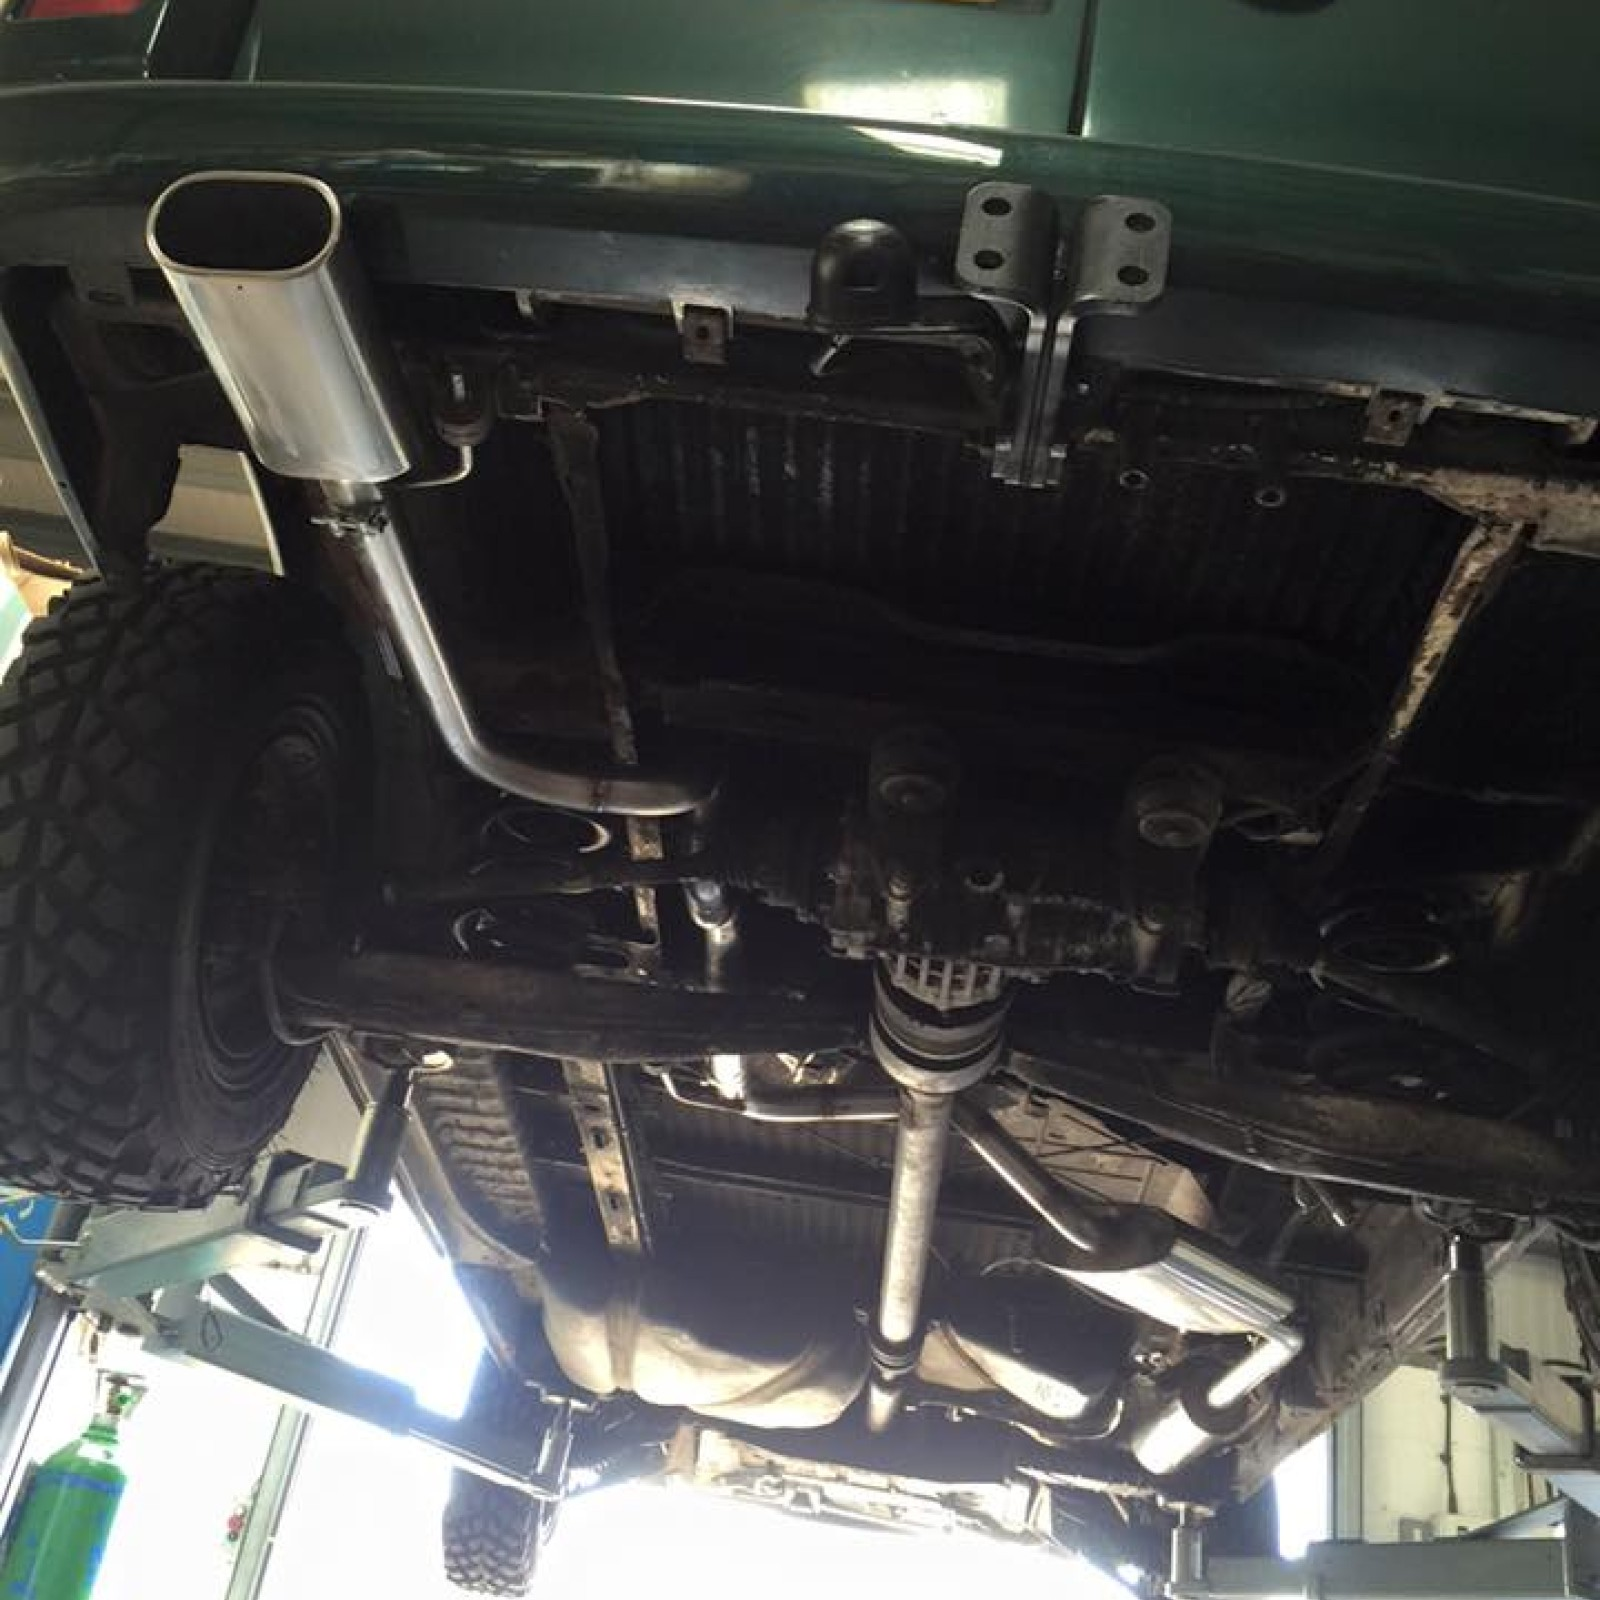 Étonnant VW T4 SYNCRO EXHAUST SYSTEM - TH Performance FS-83